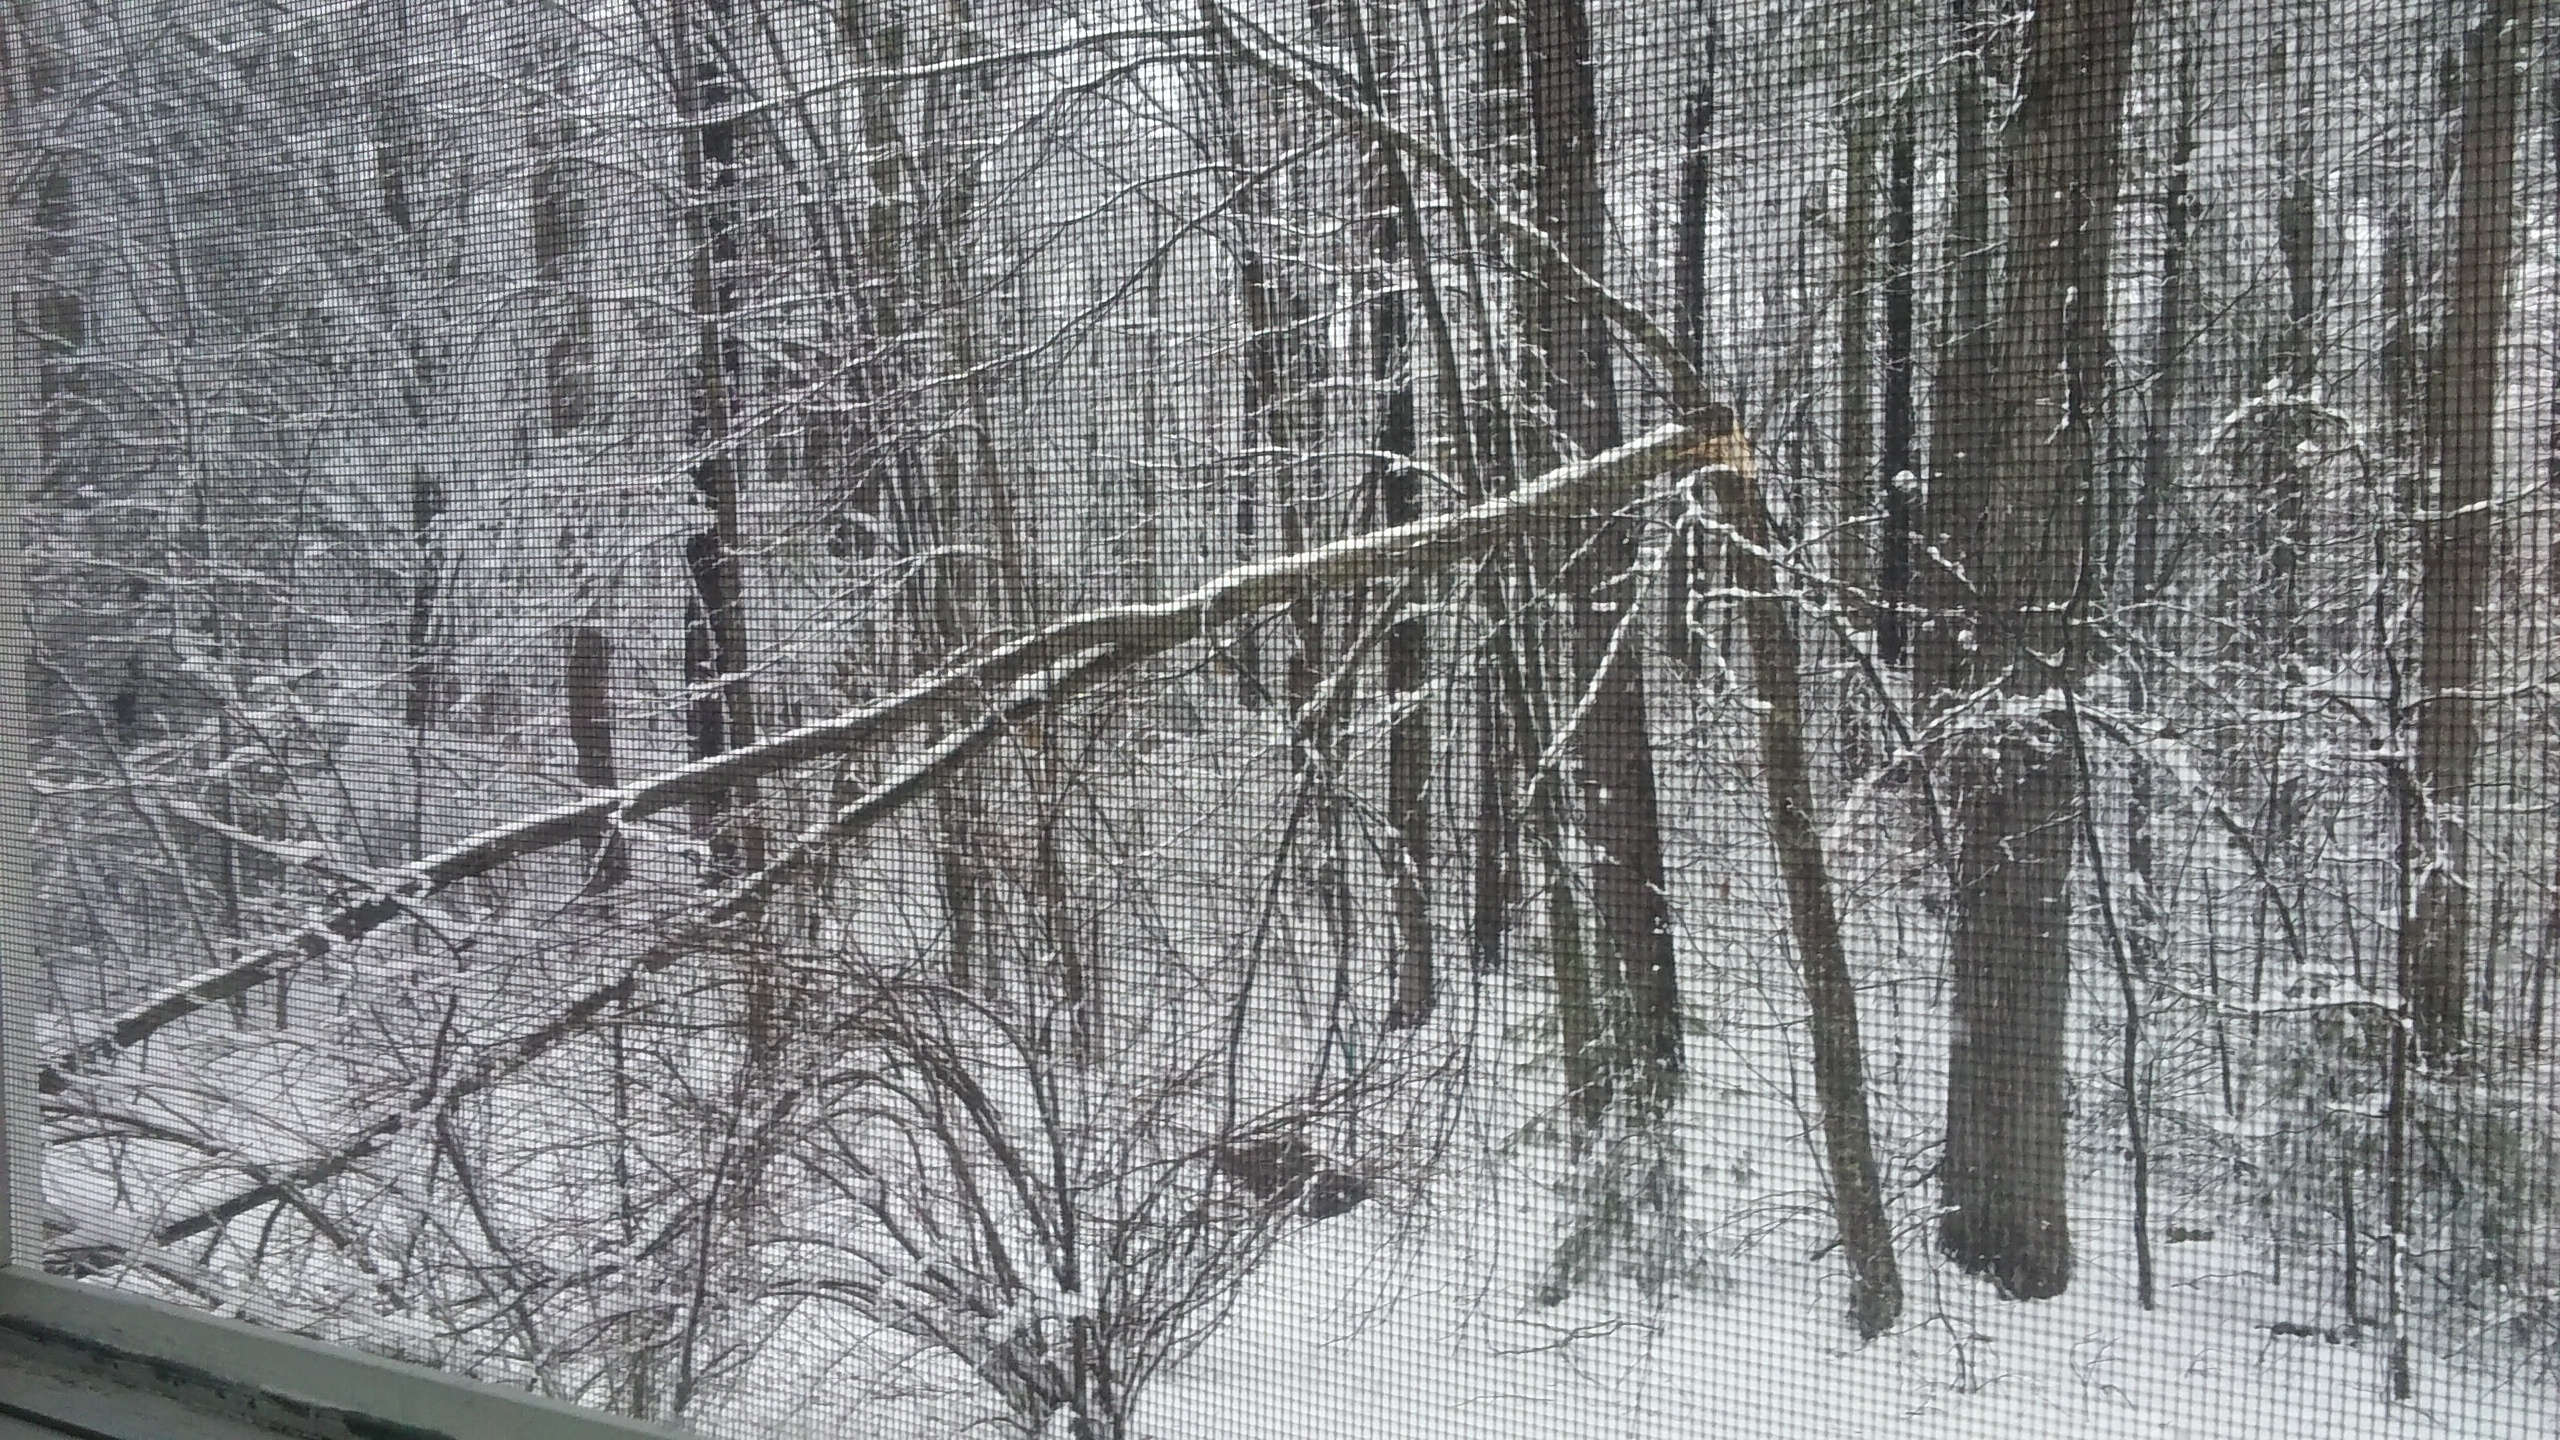 Tree broken off by heavy snow.